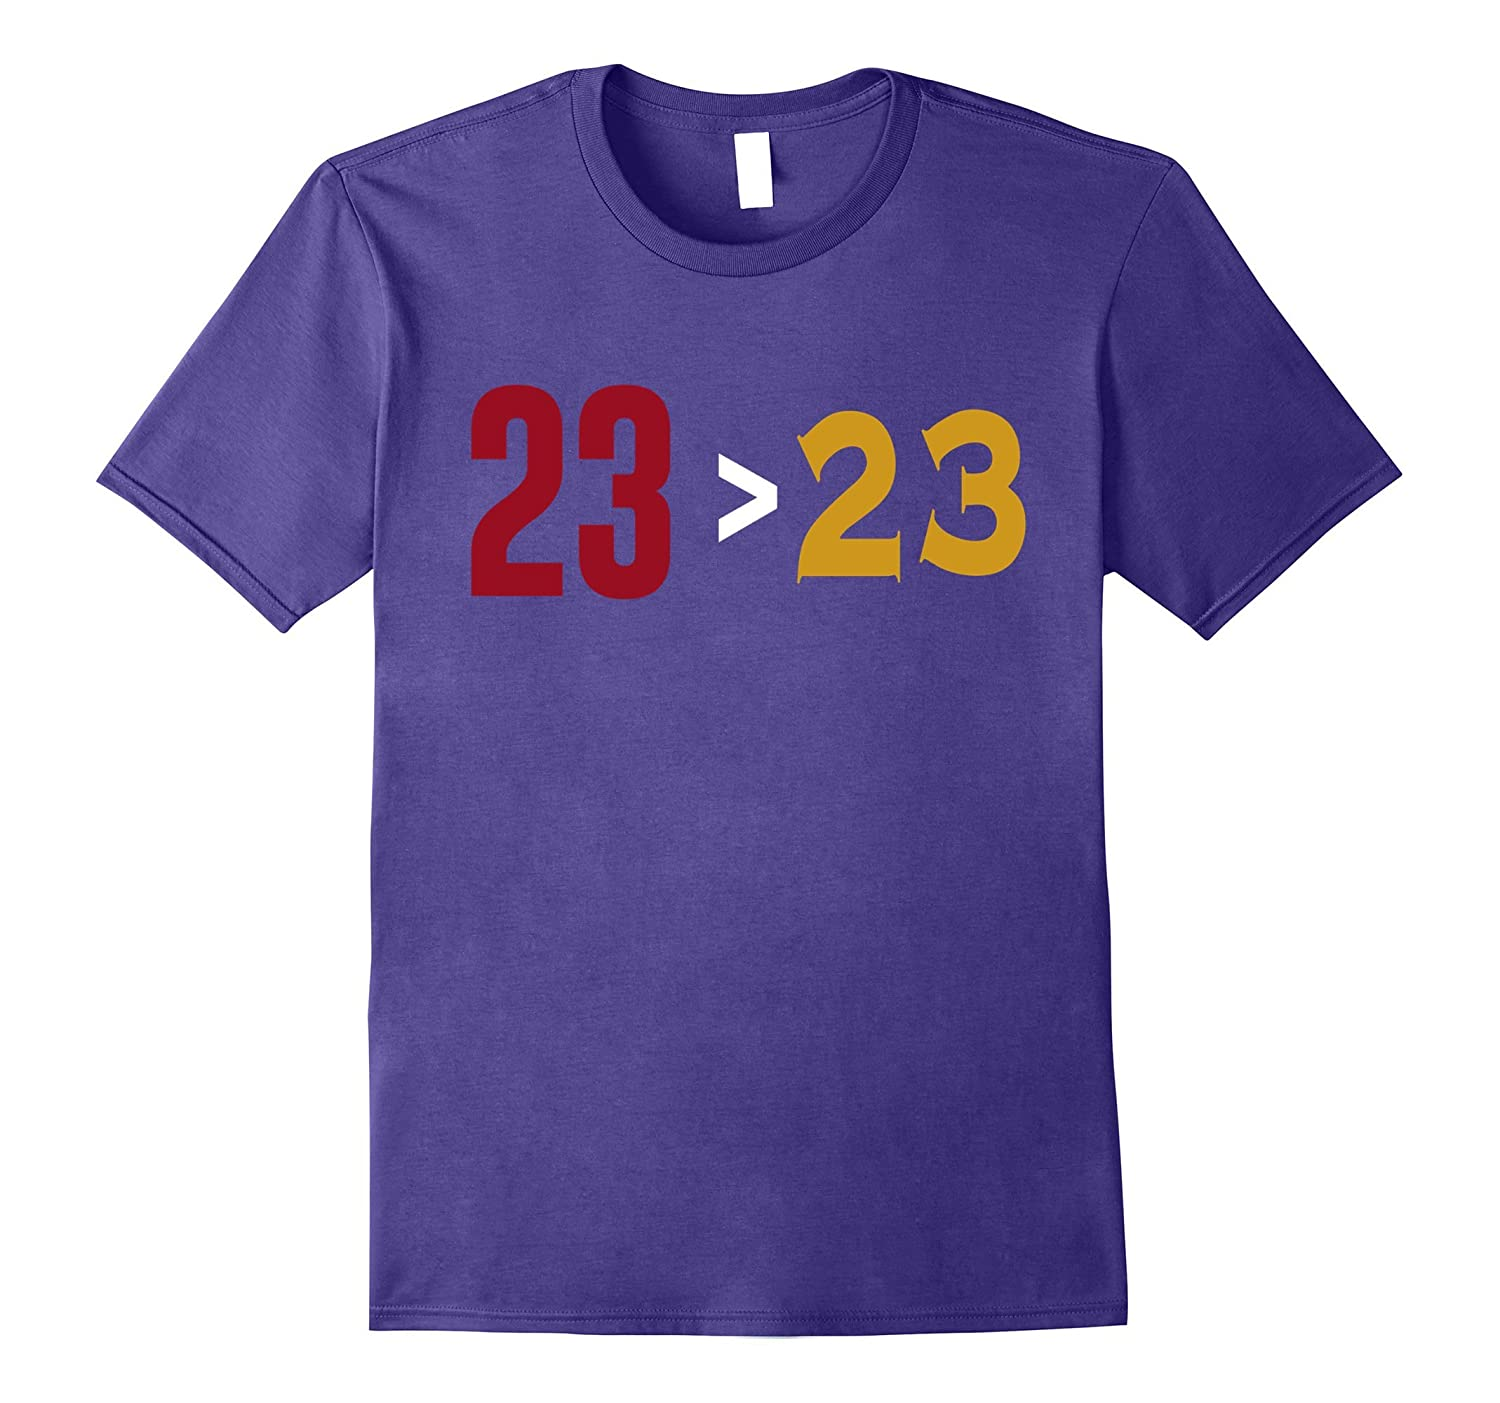 23 greater than 23 shirt funny-PL